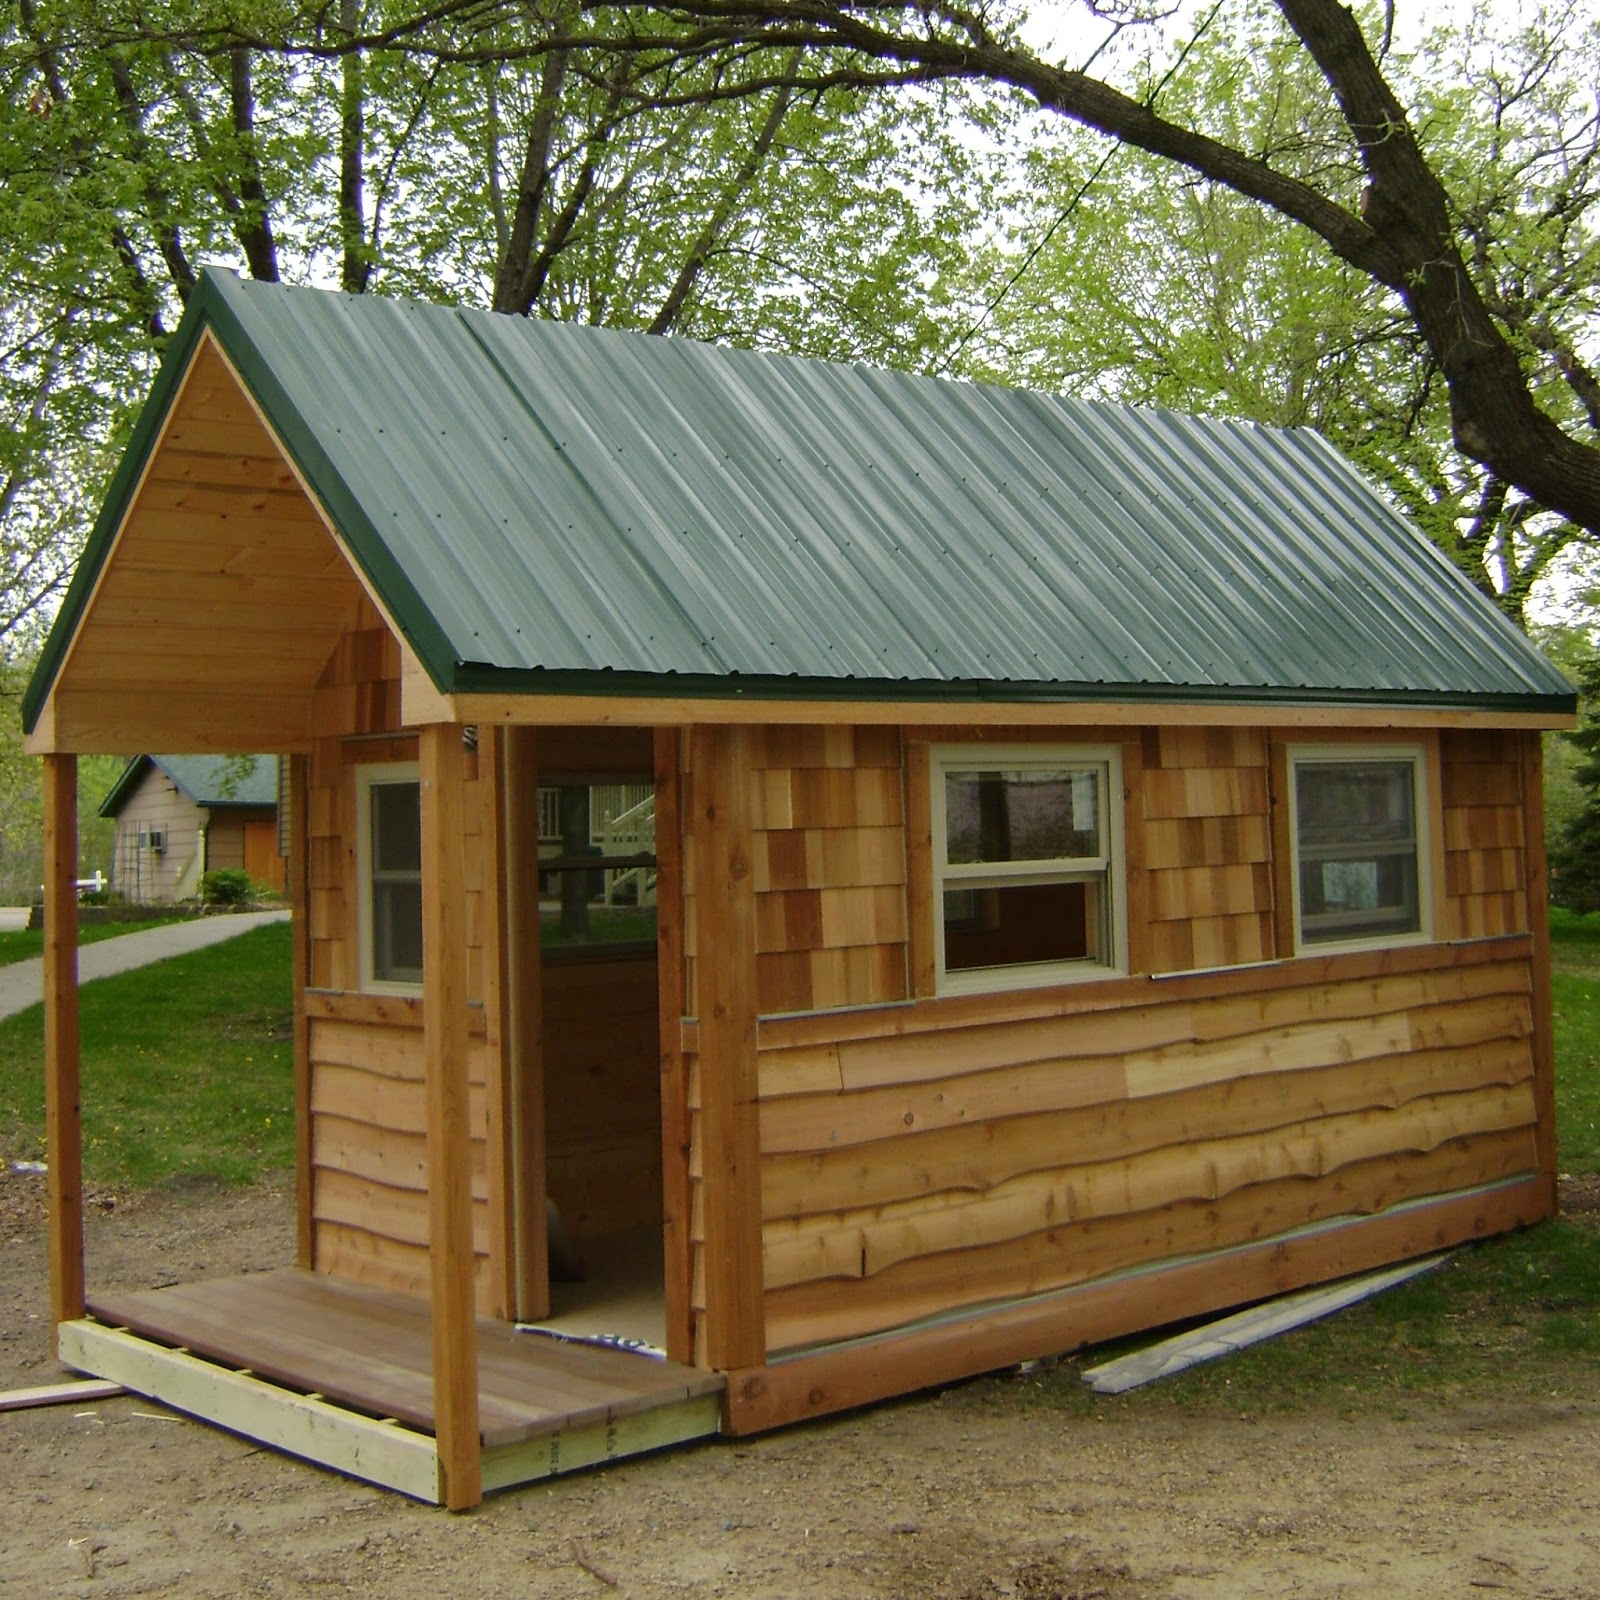 Tiny Home Designs: THOUGHTSKOTO